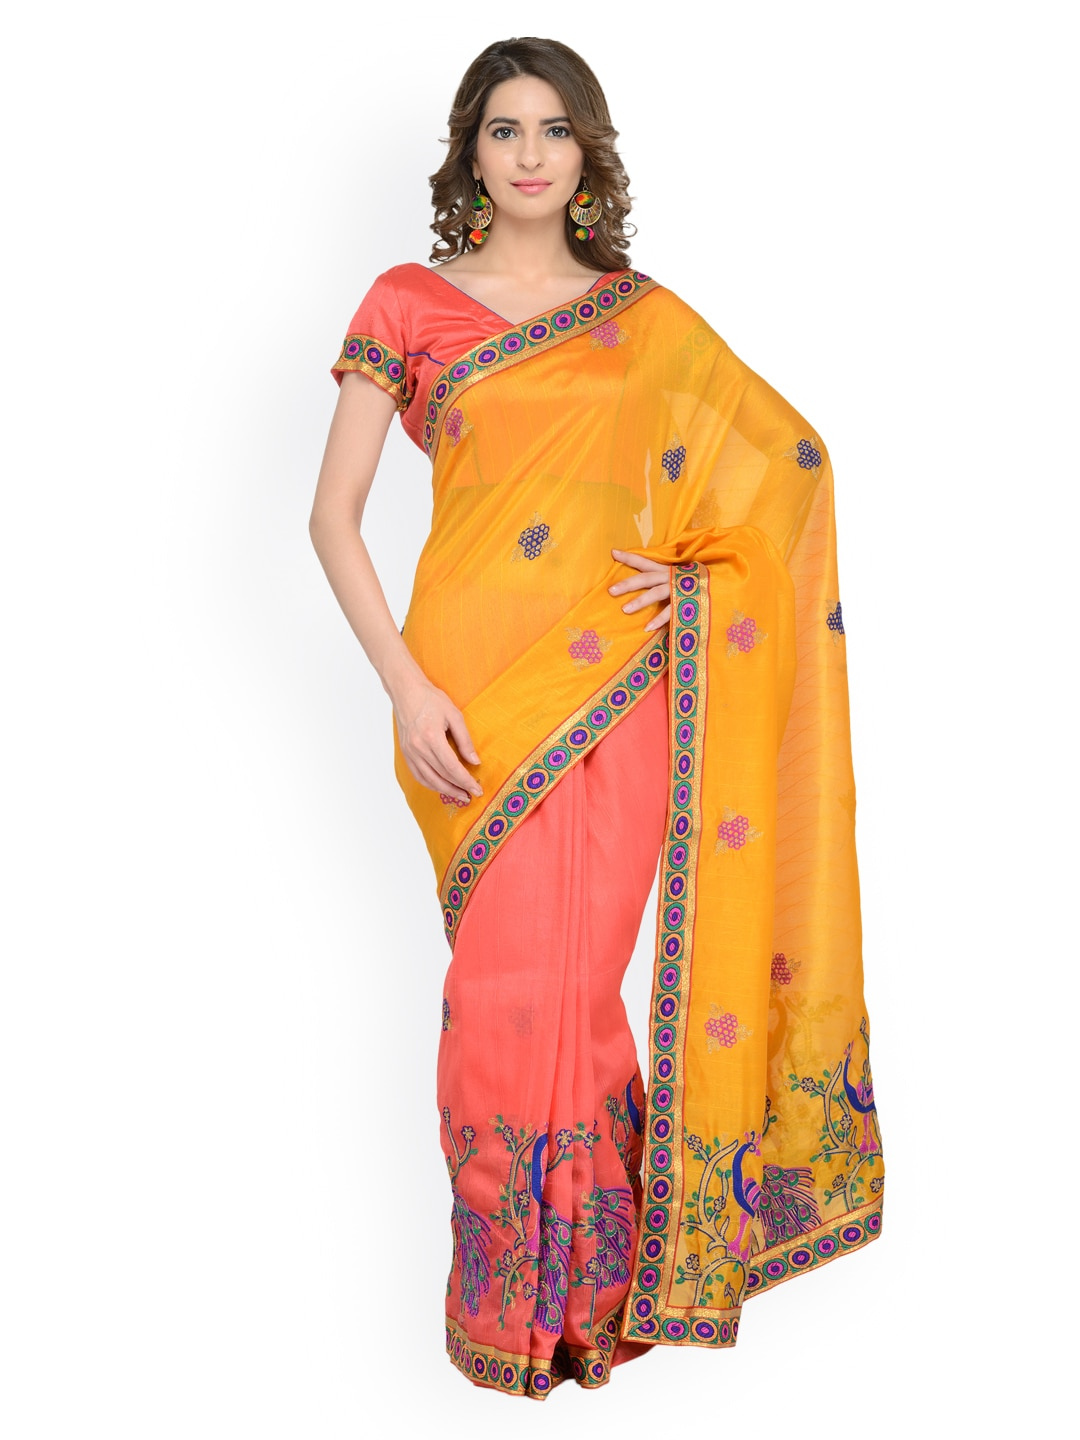 77c9f160caaf8c Fusion Wear - Online Shopping of Indian Fusion Wear